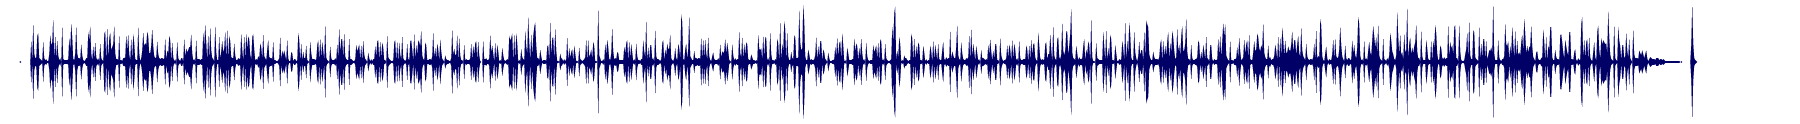 waveform of track #88969